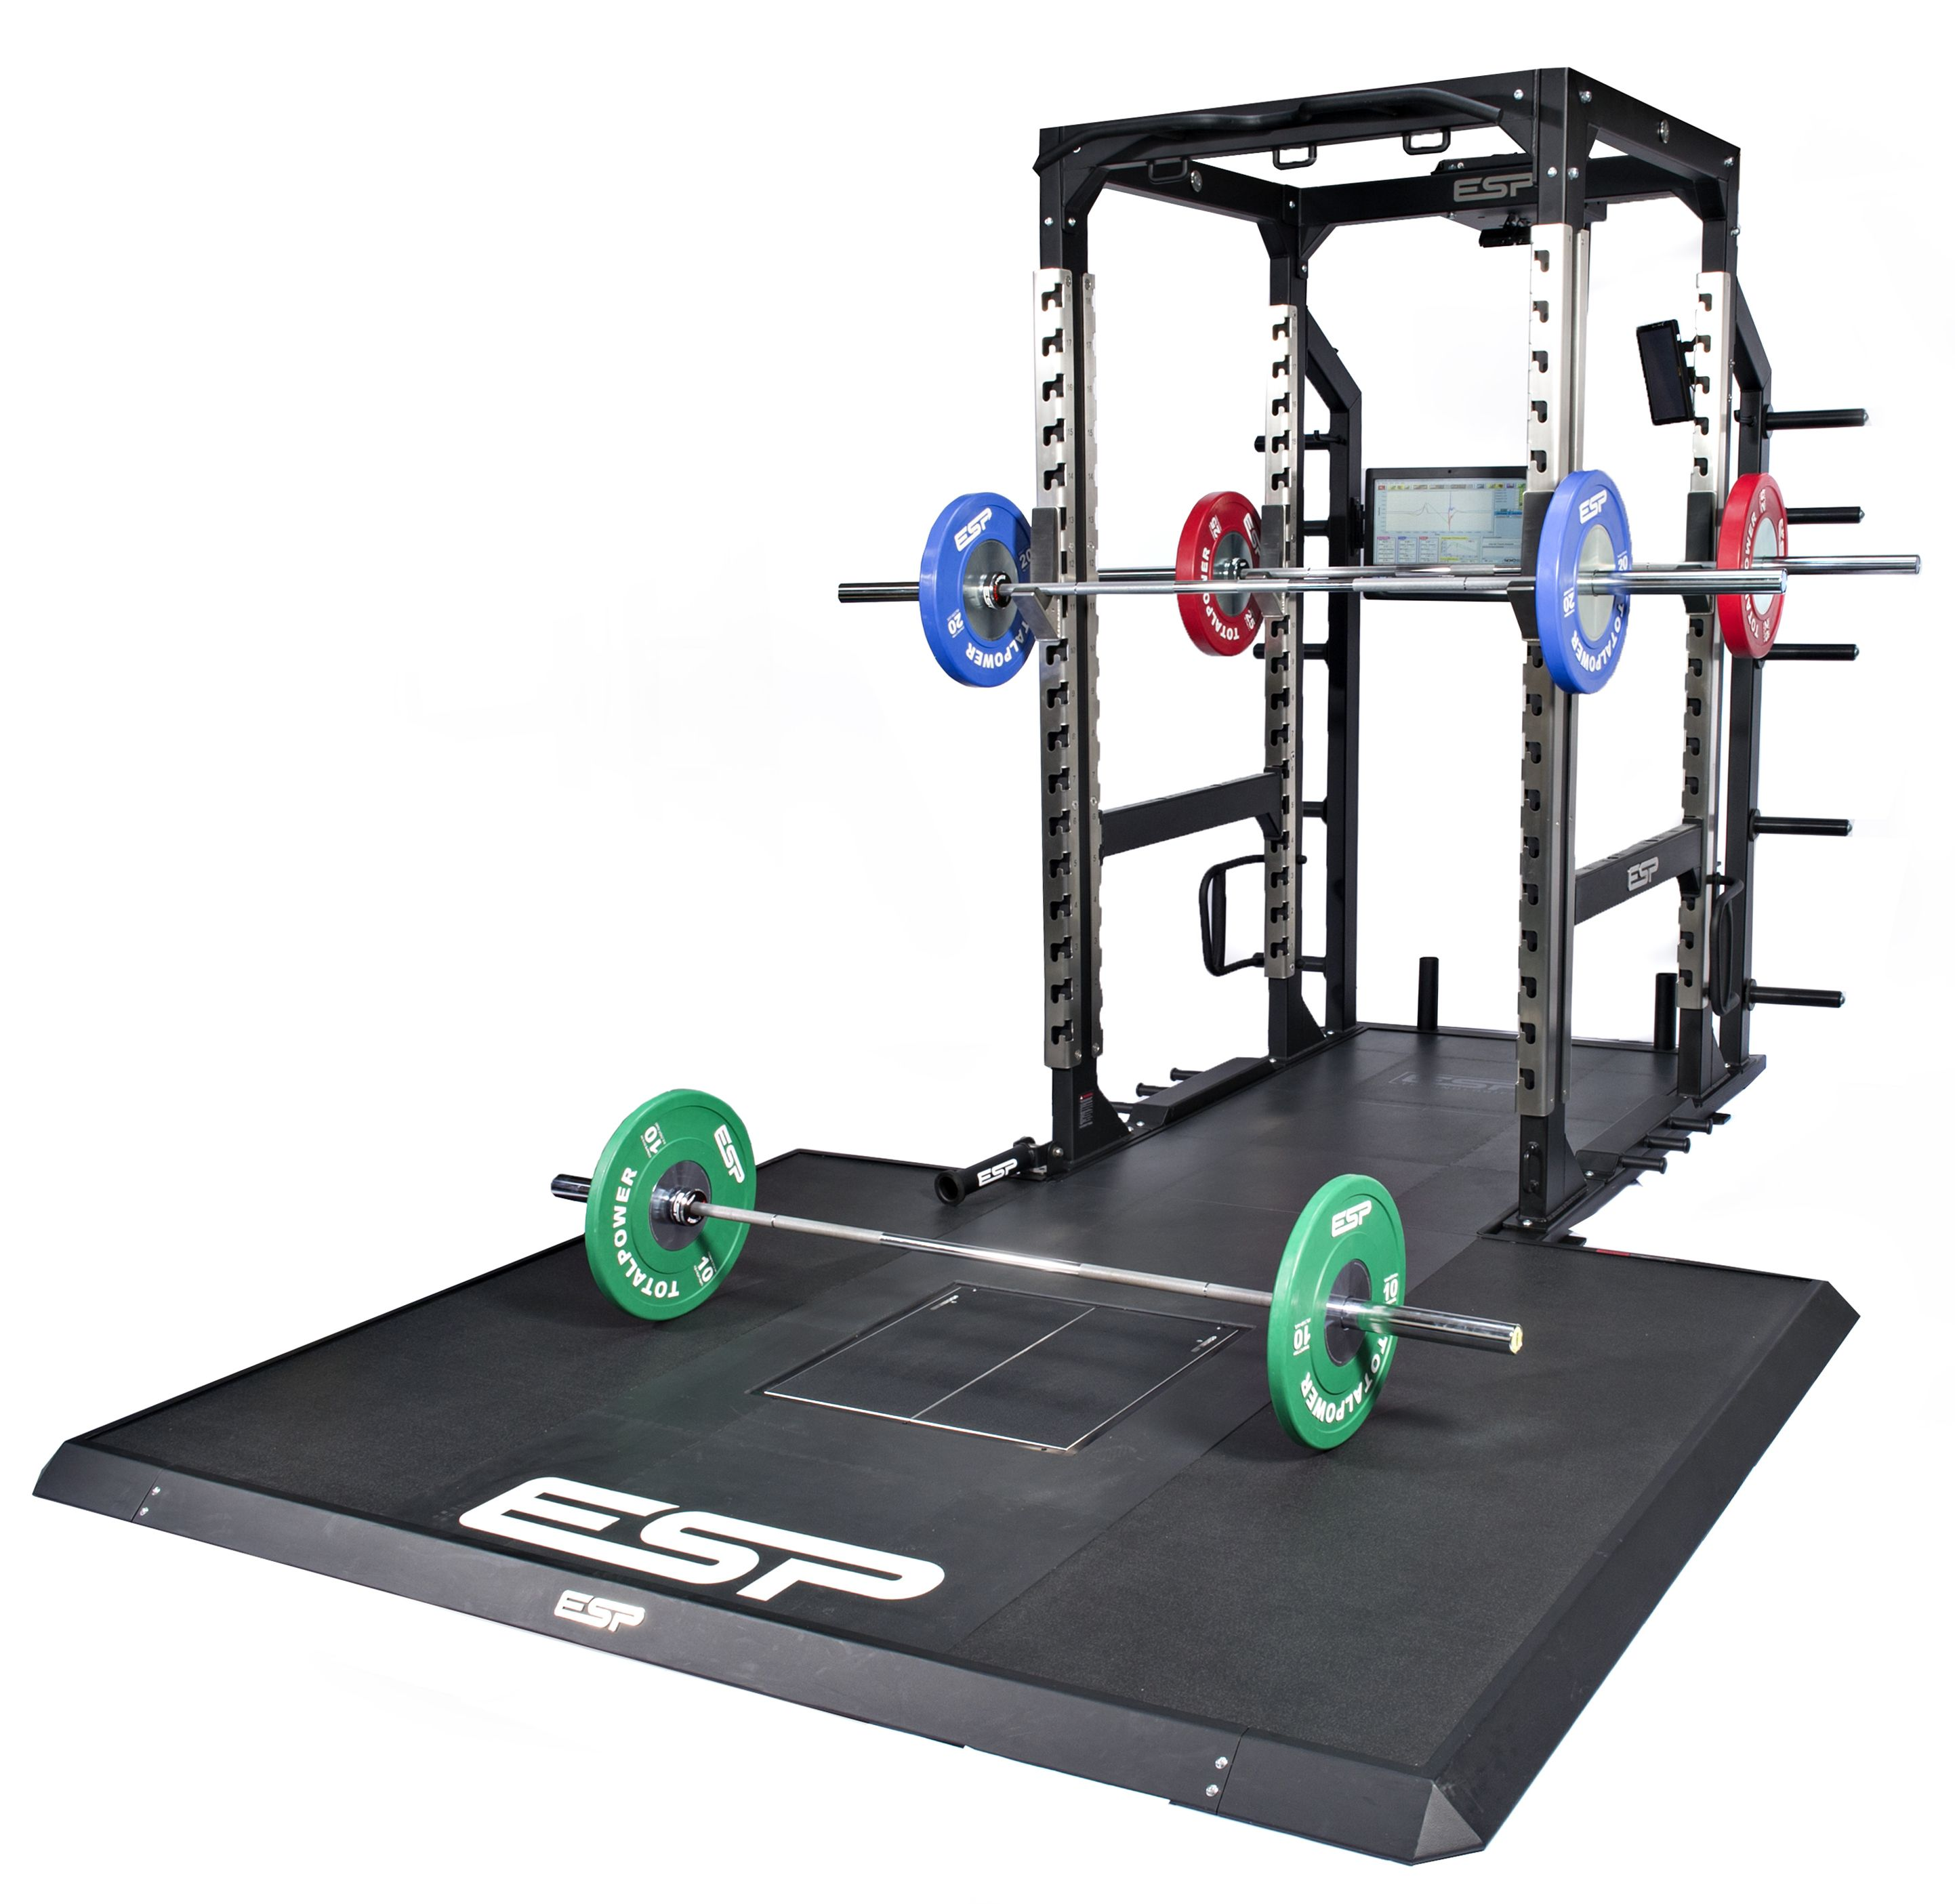 dp com view rack position collapsible bench marcy squat weight multi olympic amazon foldable larger